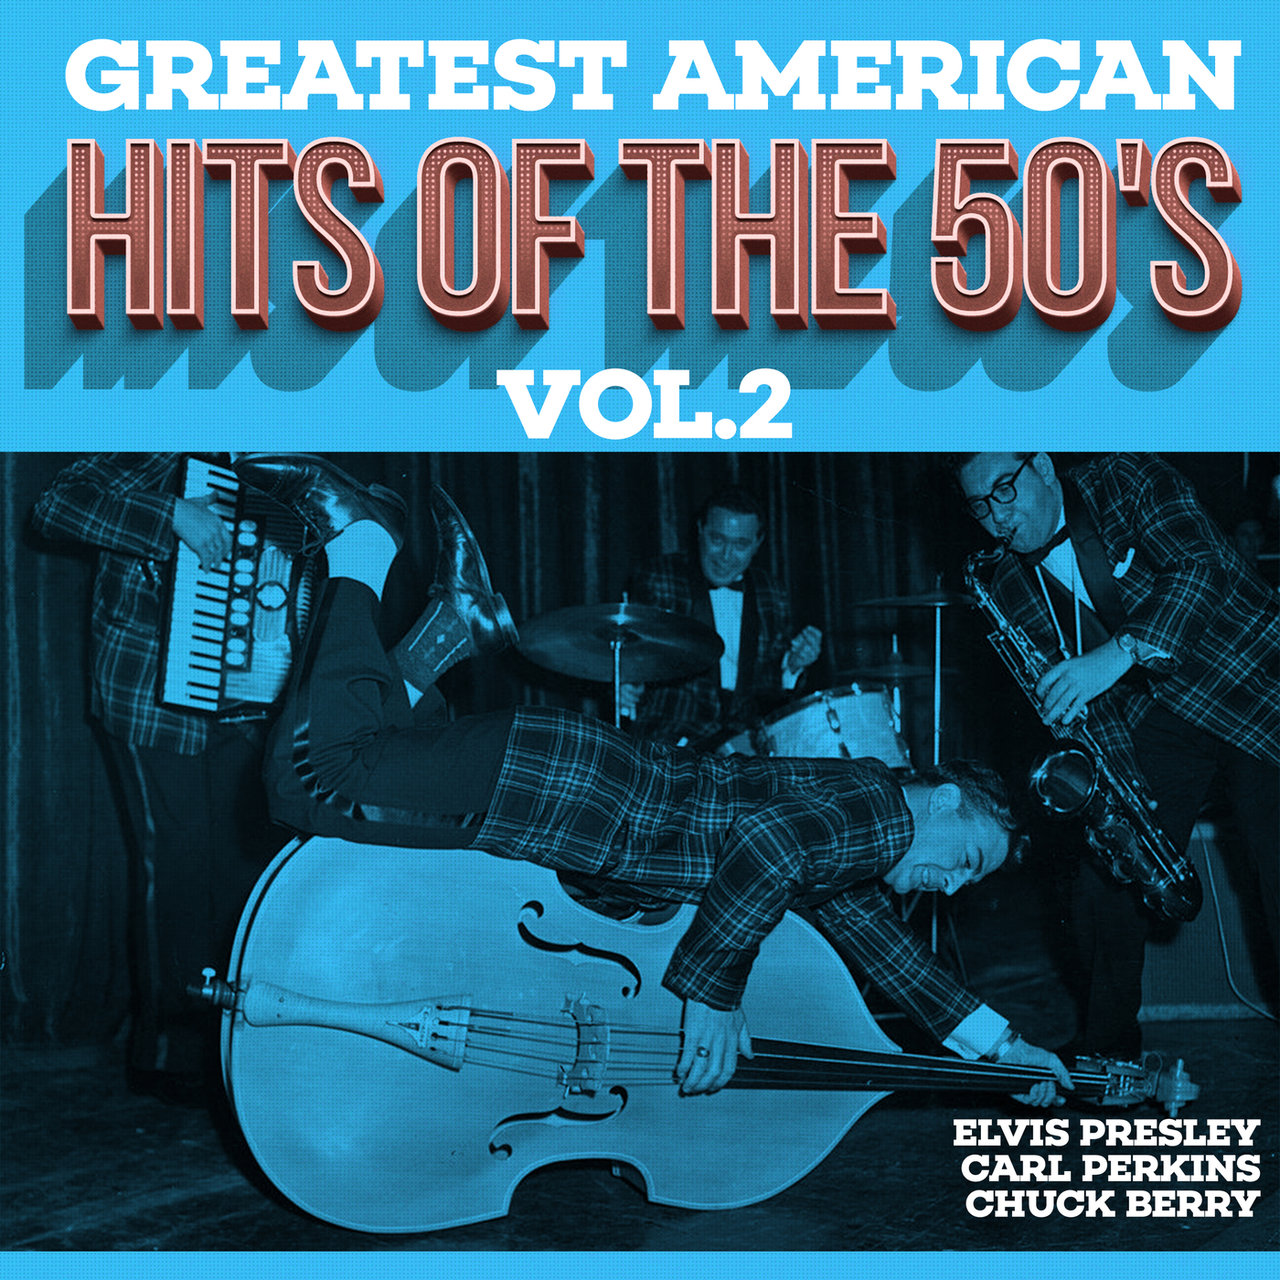 Greatest American Hits Of The 50's Vol.3